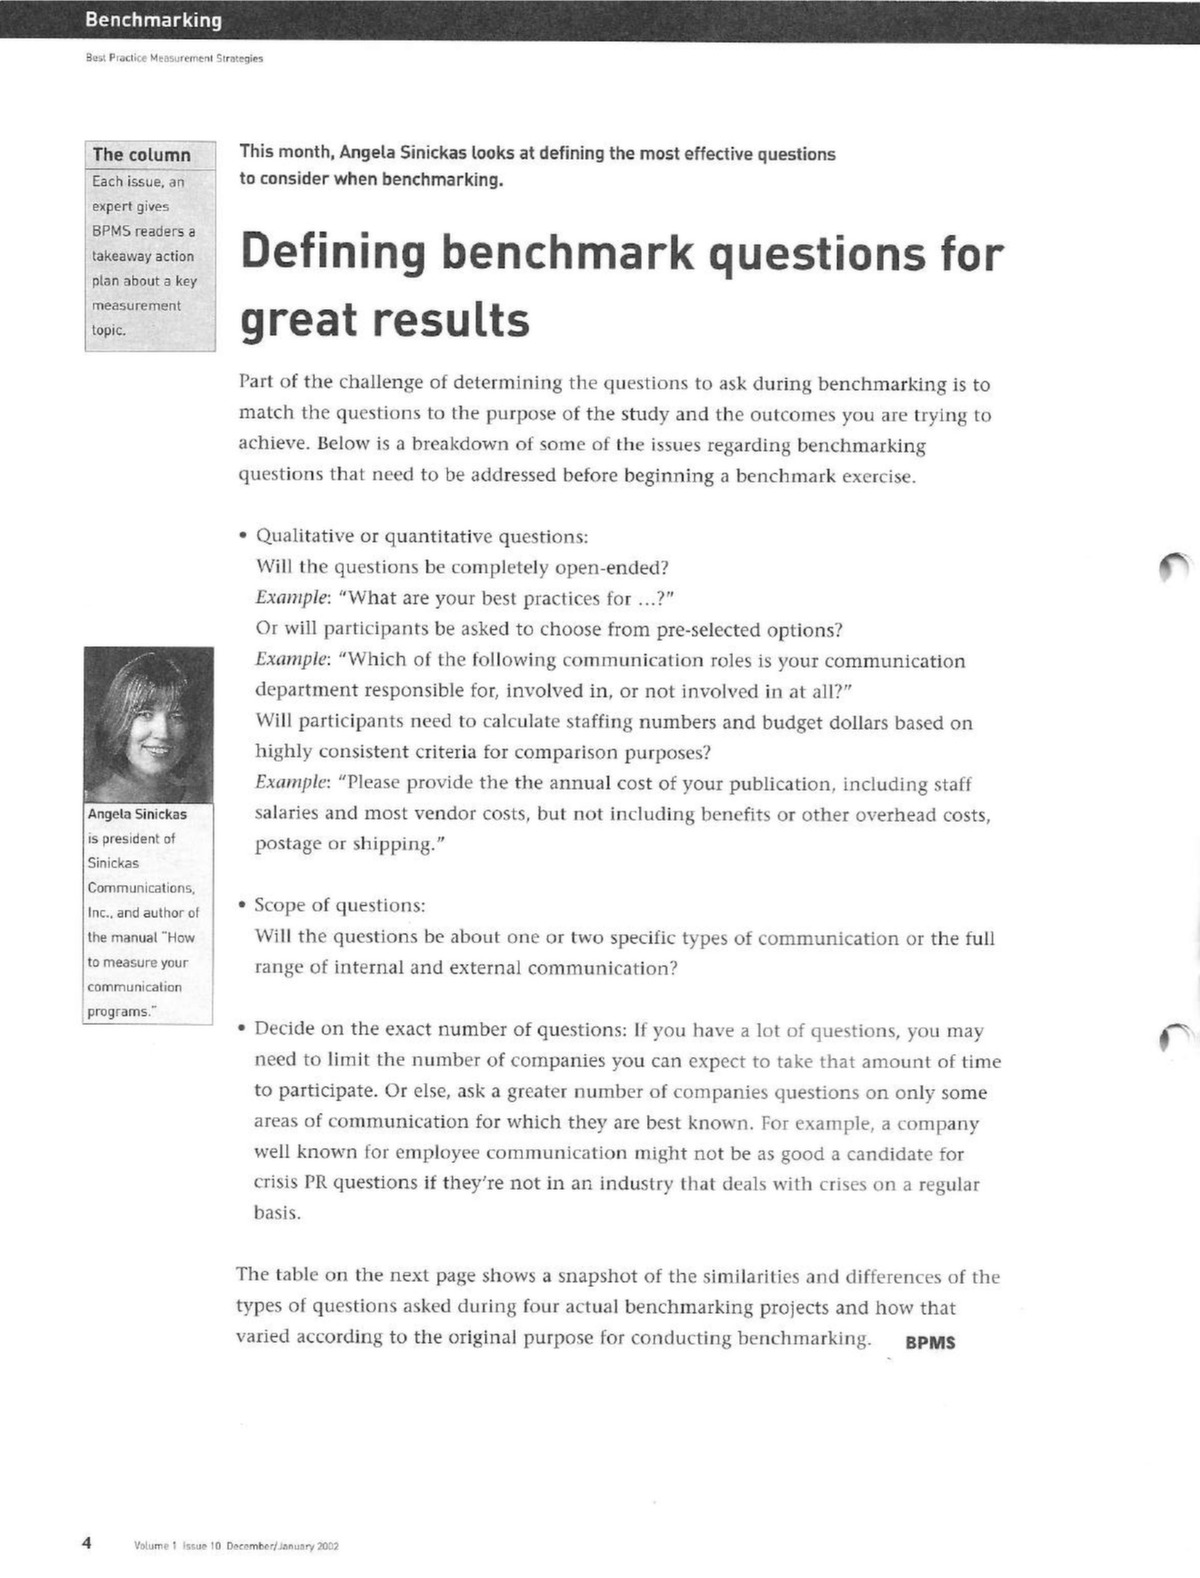 Defining benchmarking questions for great results - Sinickas